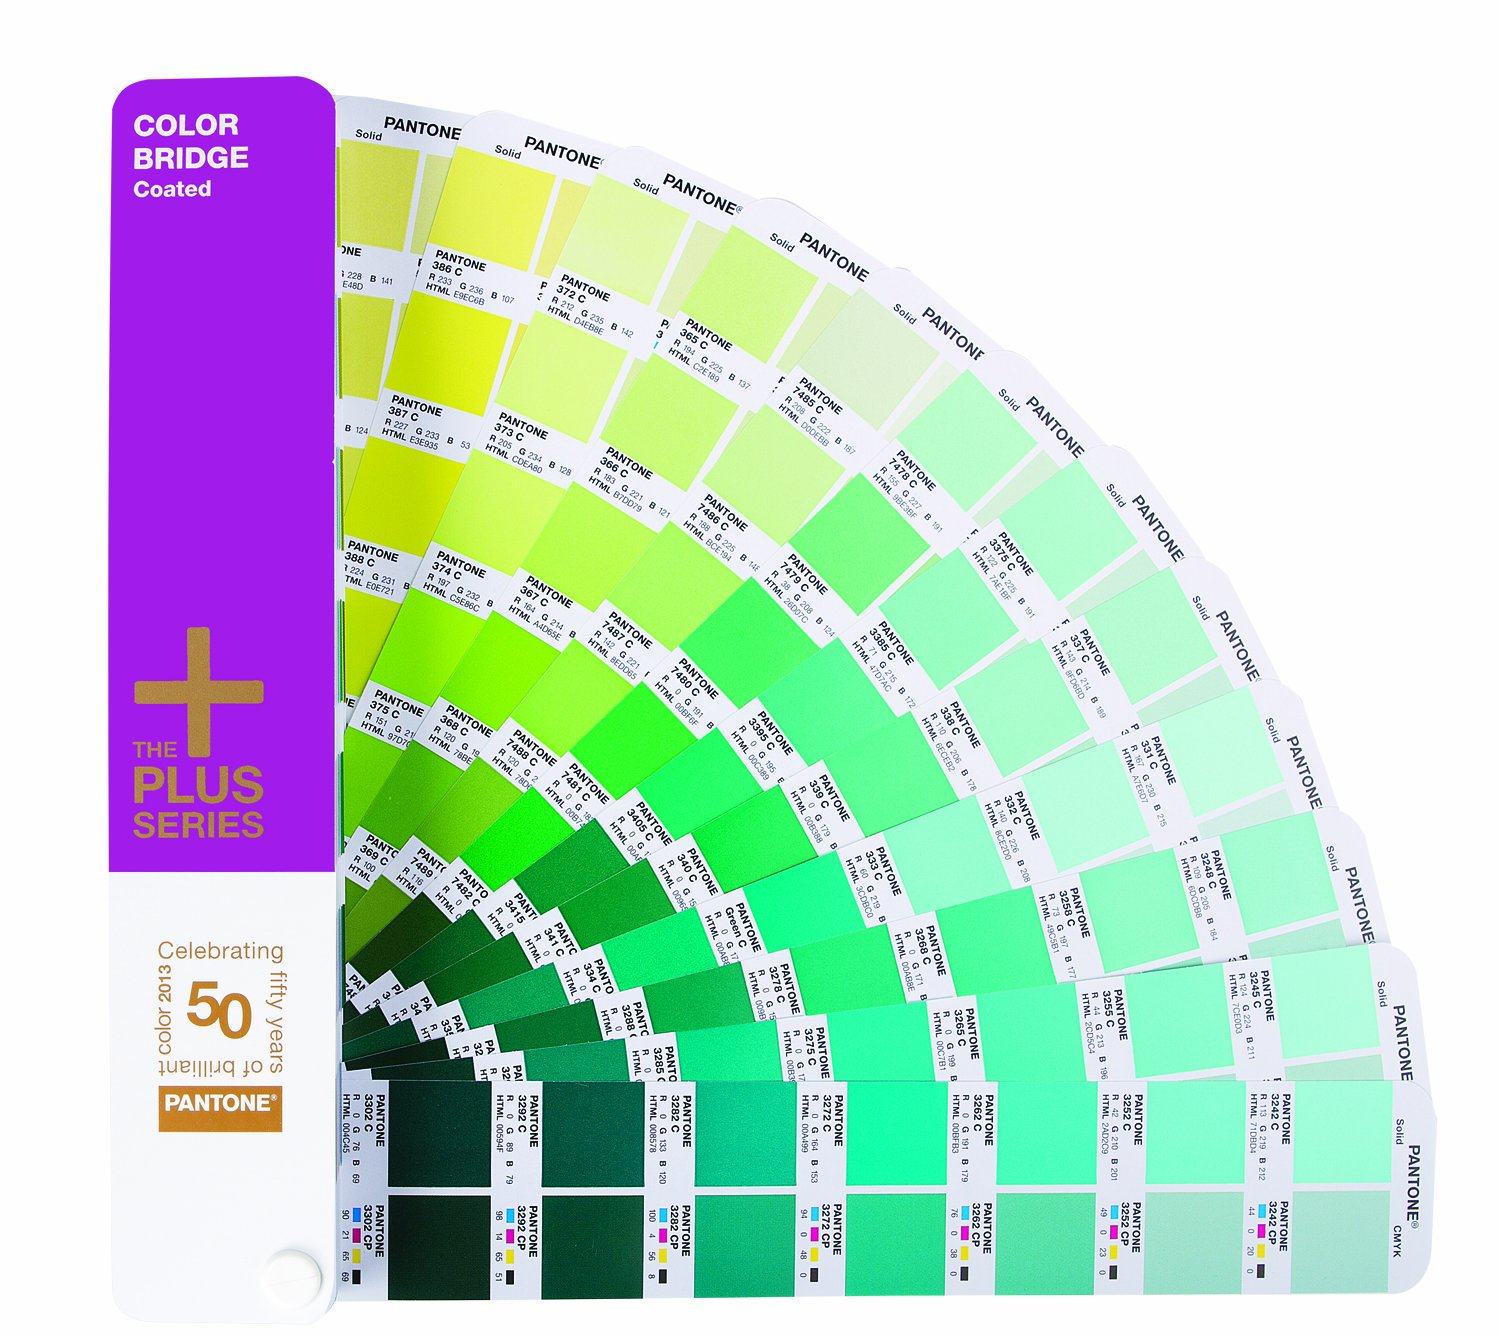 Amazon pantone gg4103 color bridge coated home improvement nvjuhfo Choice Image